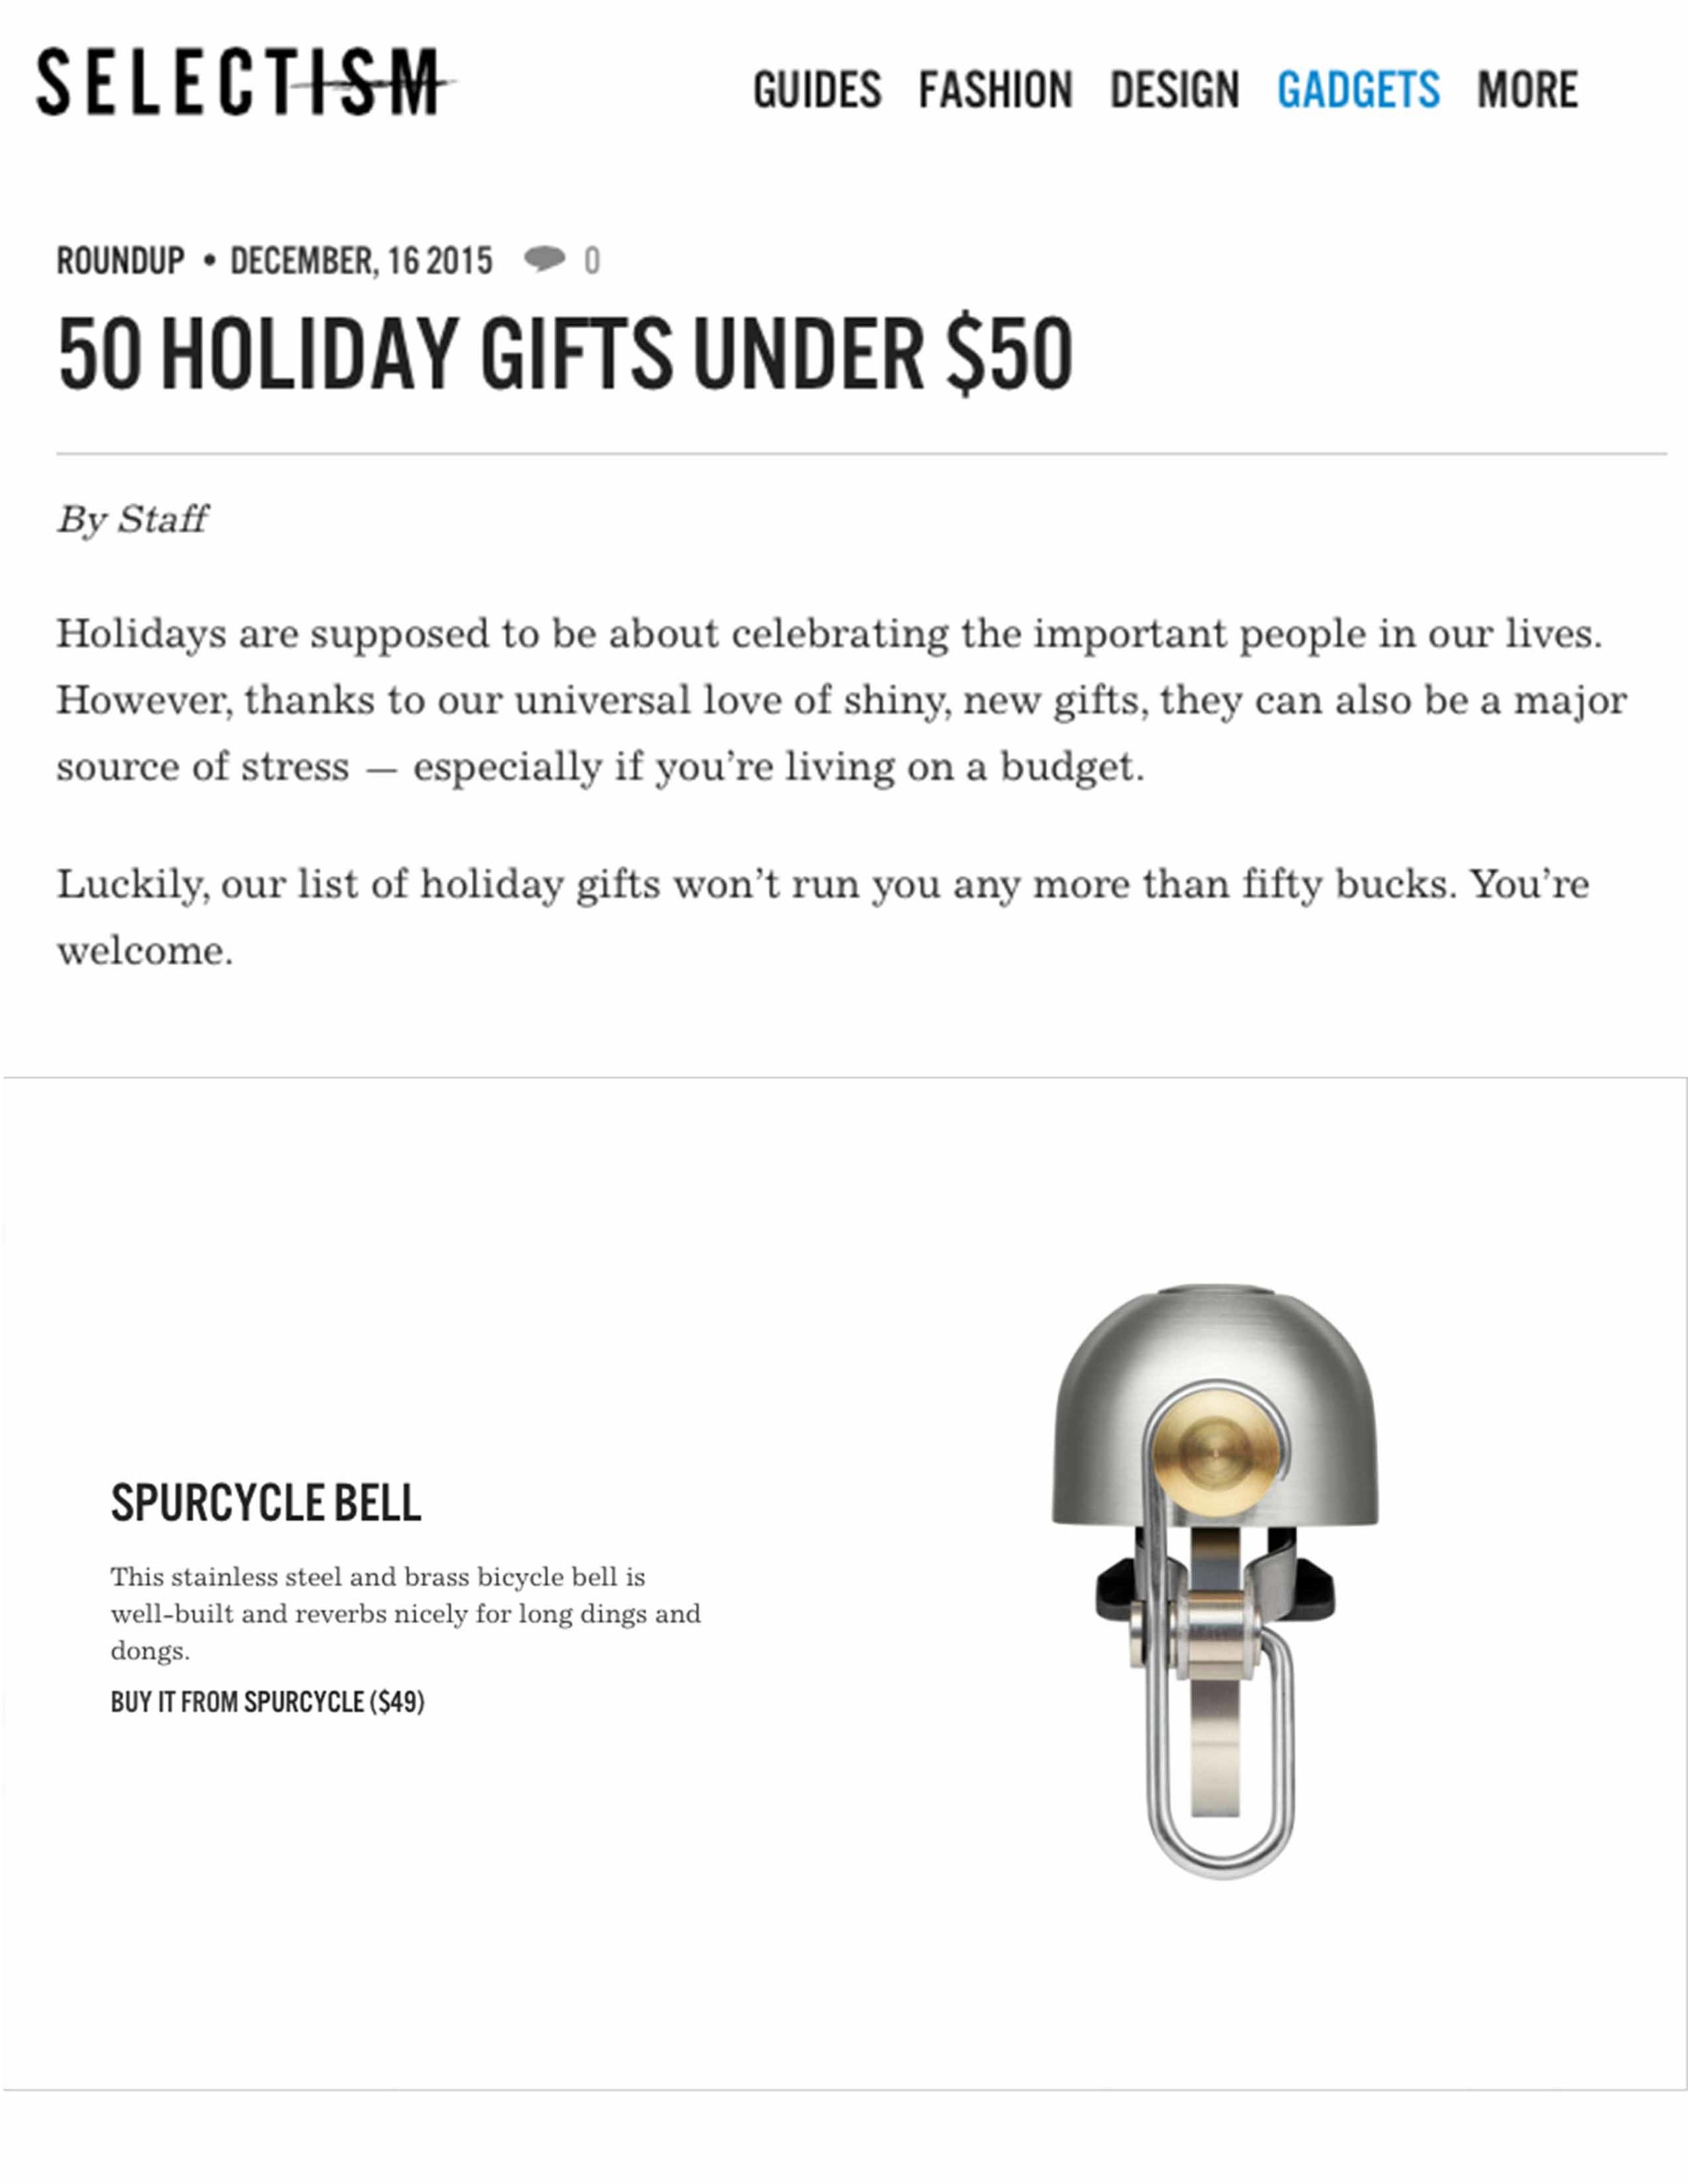 Selectism_bell_giftguide_16Dec15.jpg